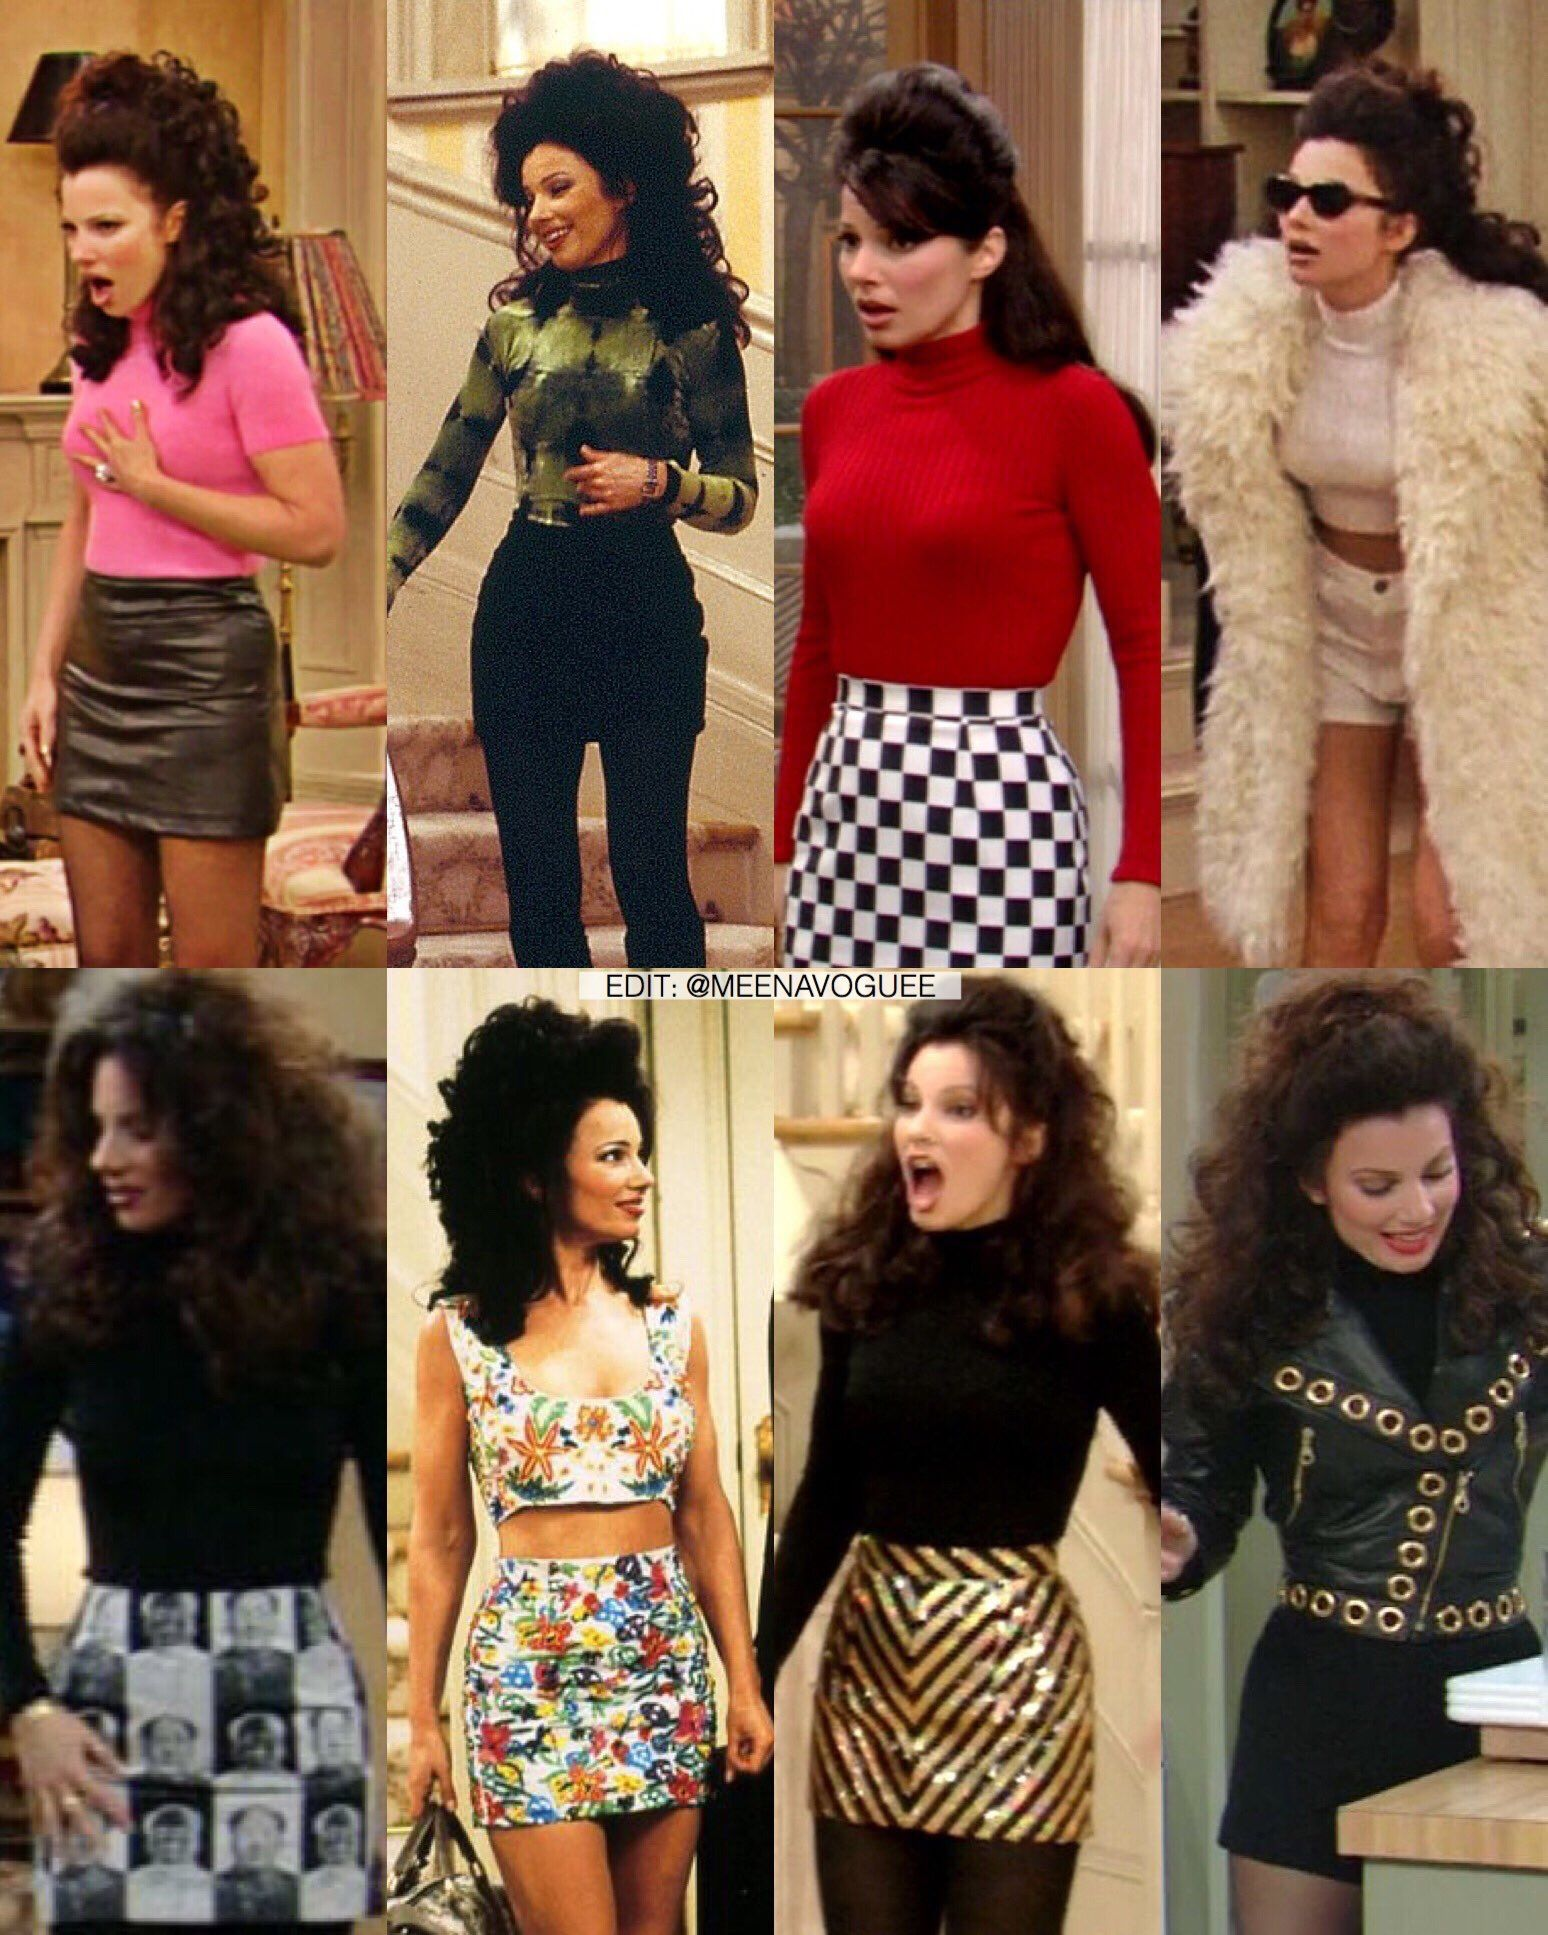 Outfit inspiration  Fran fine outfits, Early 5s fashion, 5s